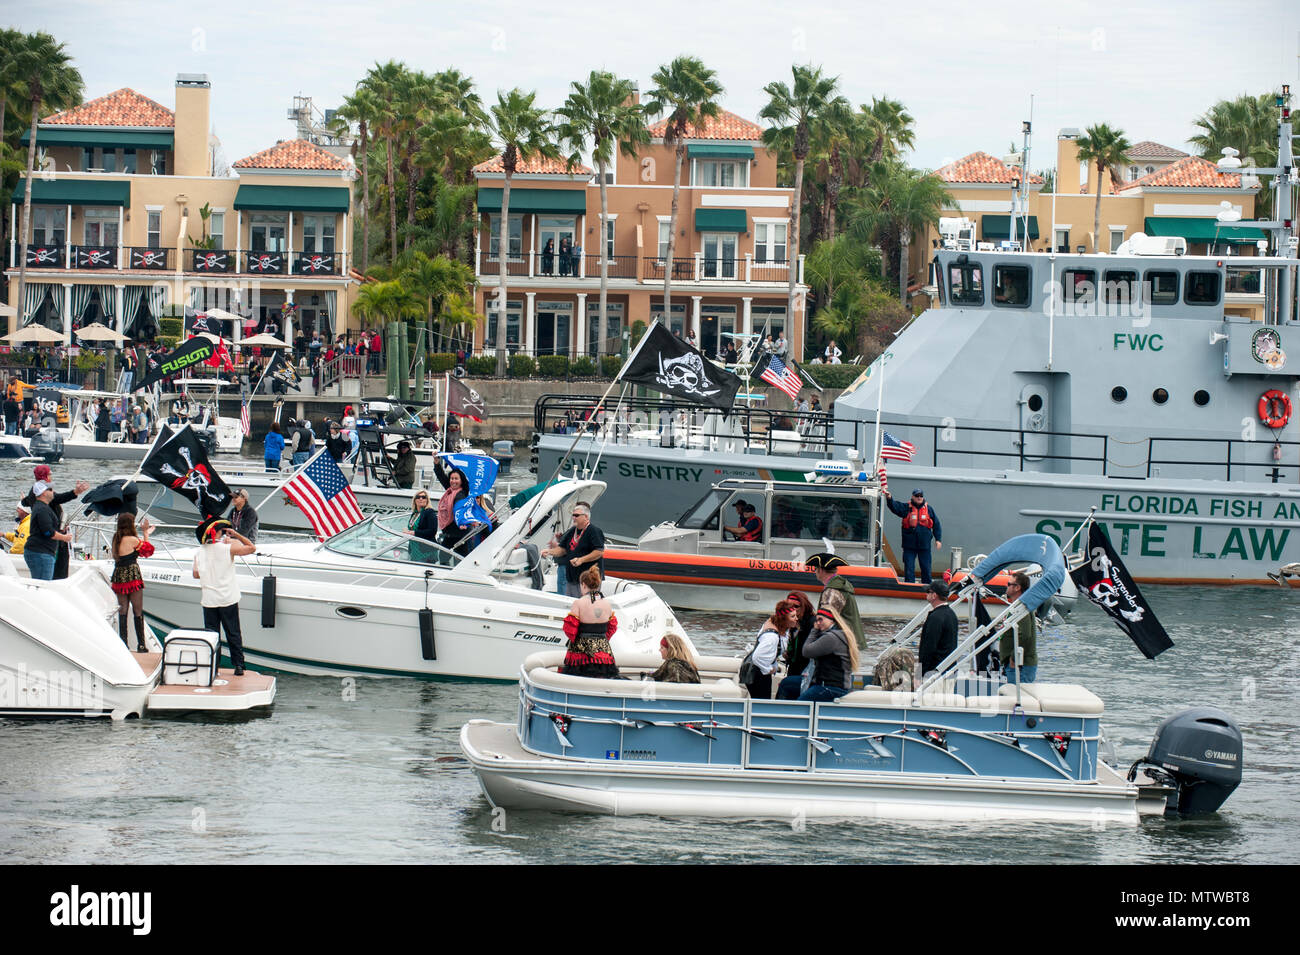 Crews from the Coast Guard, Coast Guard Auxiliary and Florida Fish and Wildlife Conservation Commission worked with local law enforcement agencies Saturday, Jan. 28, 2017 to keep waterways safe during the 2017 Gasparilla Parade and Pirate Festival in the Port of Tampa. U.S. Coast Guard Petty Officer 1st Class Michael De Nyse Stock Photo